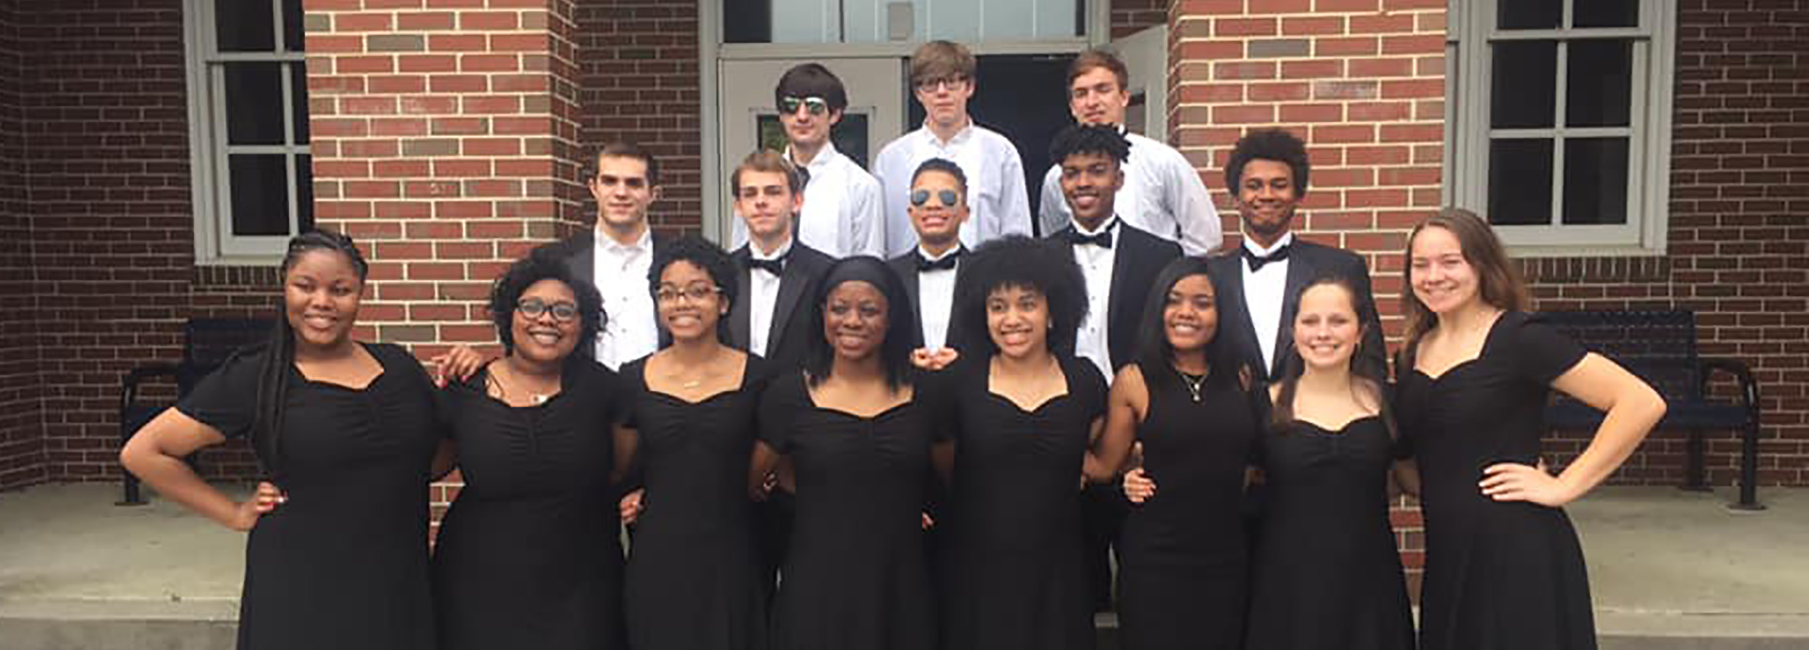 WBHS Orchestra Seniors 2019